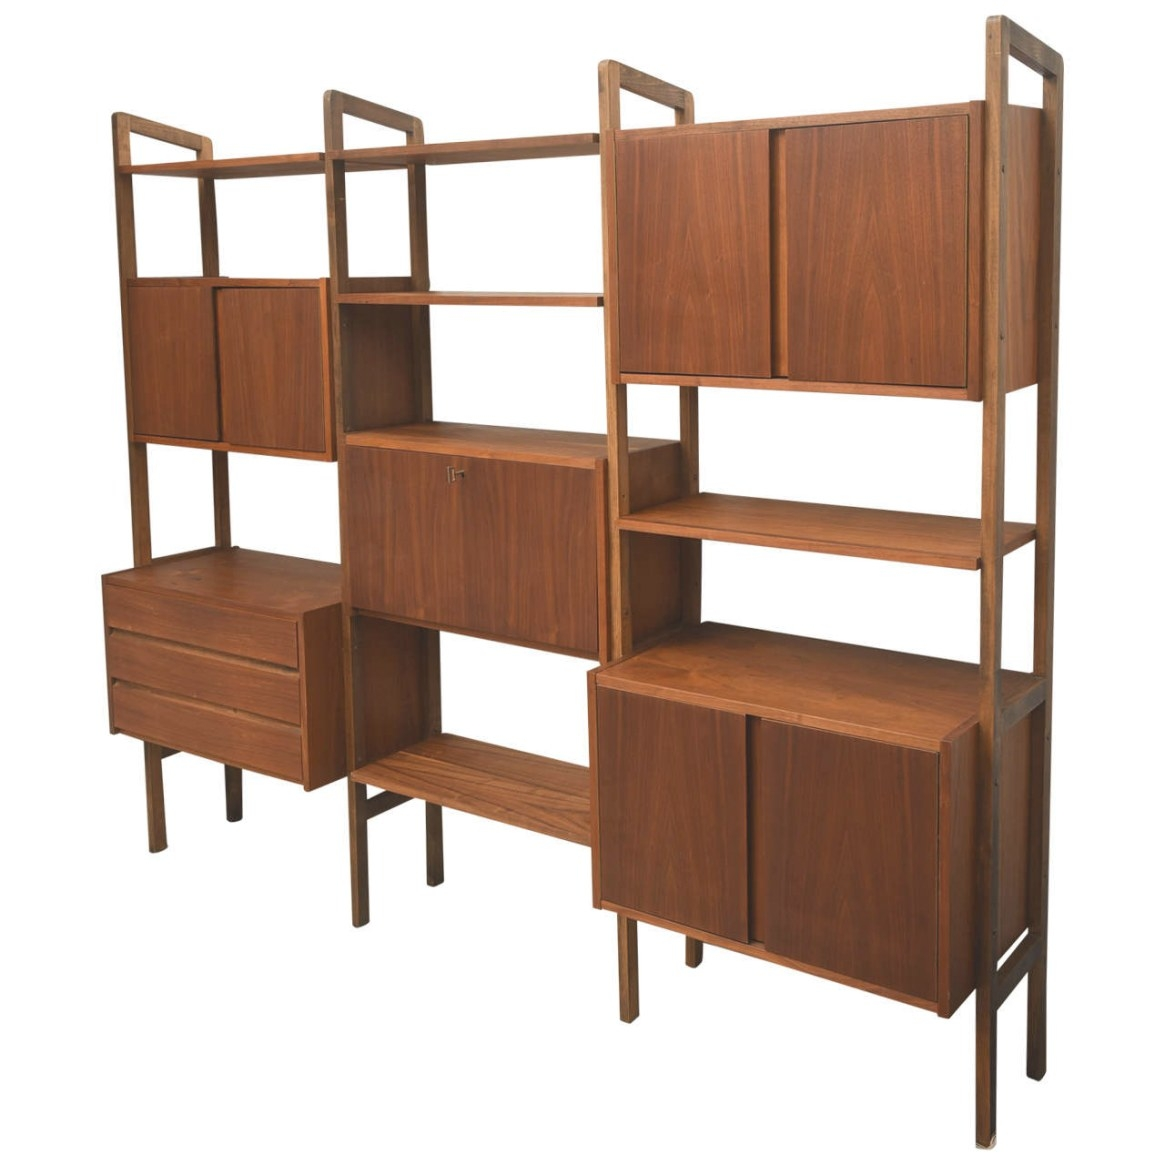 Mid-Century Modern Teak Wall Unit Or Storage, 1950S Scan intended for Mid Century Modern Recliner